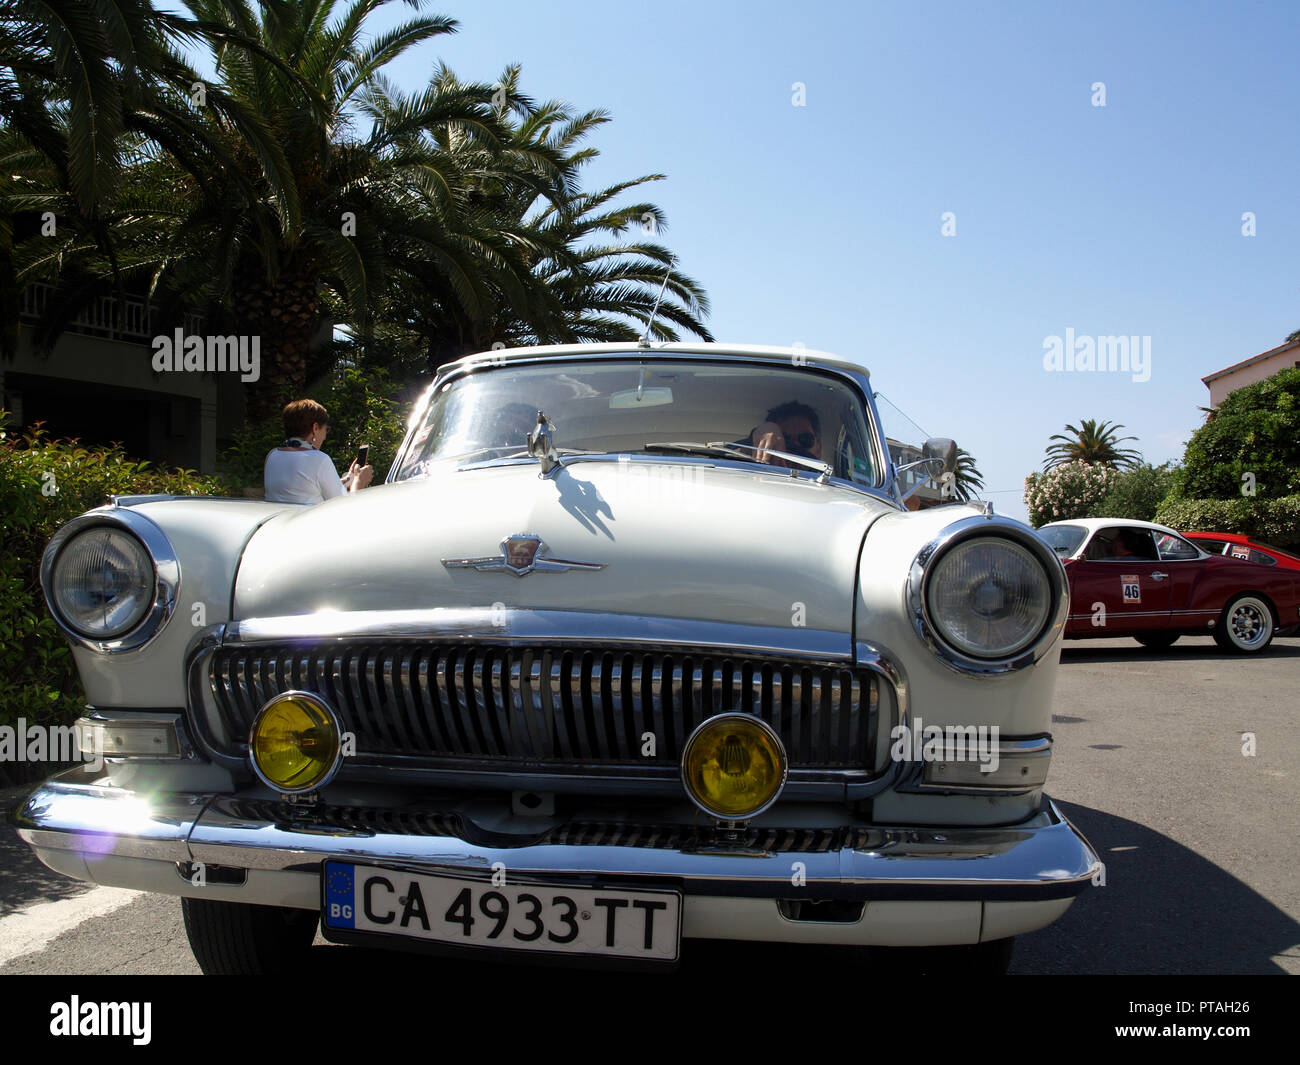 Vintage car on display at the 8th Hellenic Bulgarian LEKAM classic car rally at the Acharavi Park Hotel, Acharavi, Corfu, Greece - Stock Image